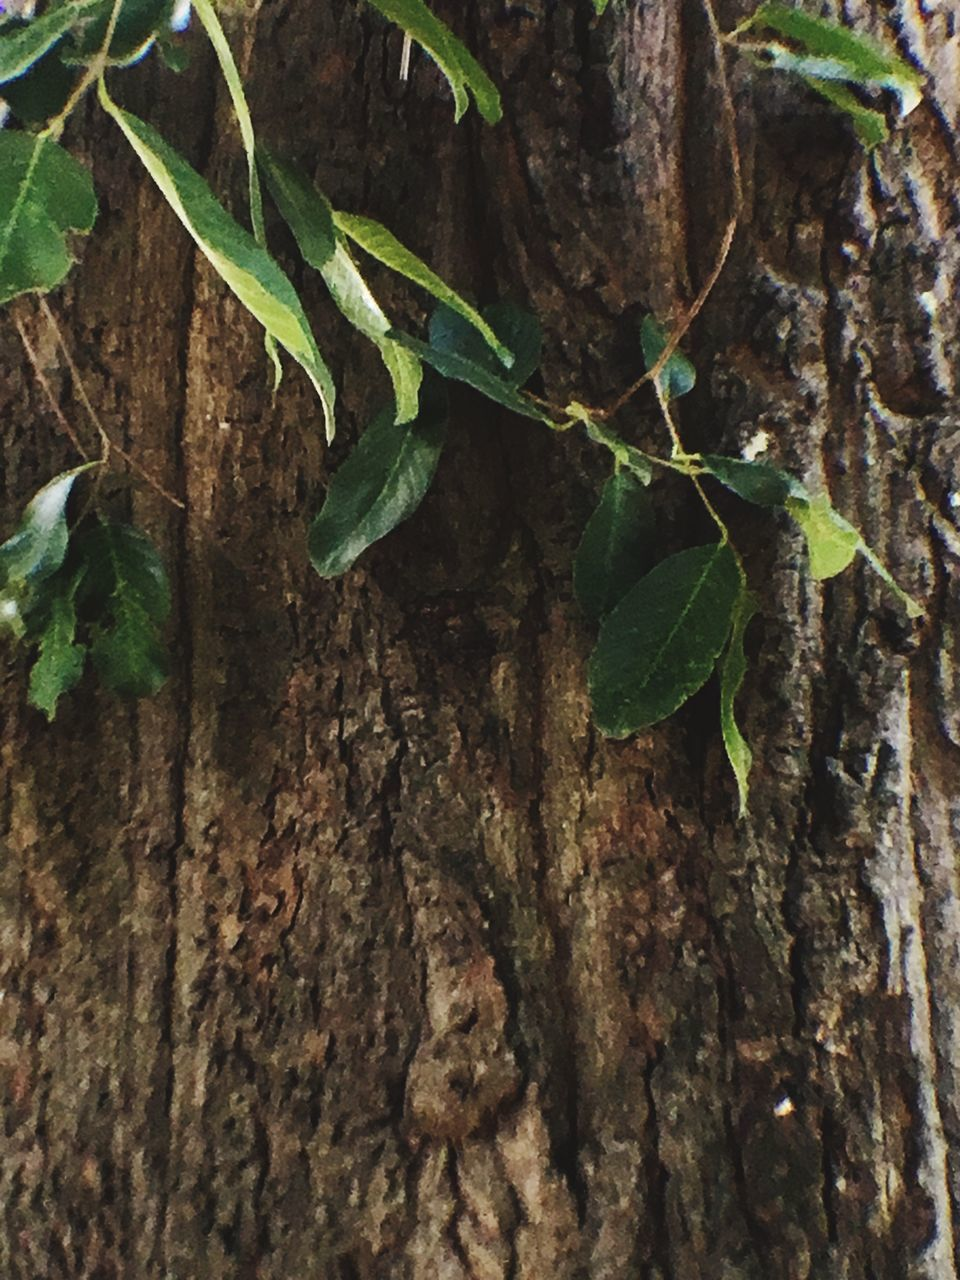 leaf, growth, green color, tree trunk, plant, nature, close-up, no people, day, tree, outdoors, freshness